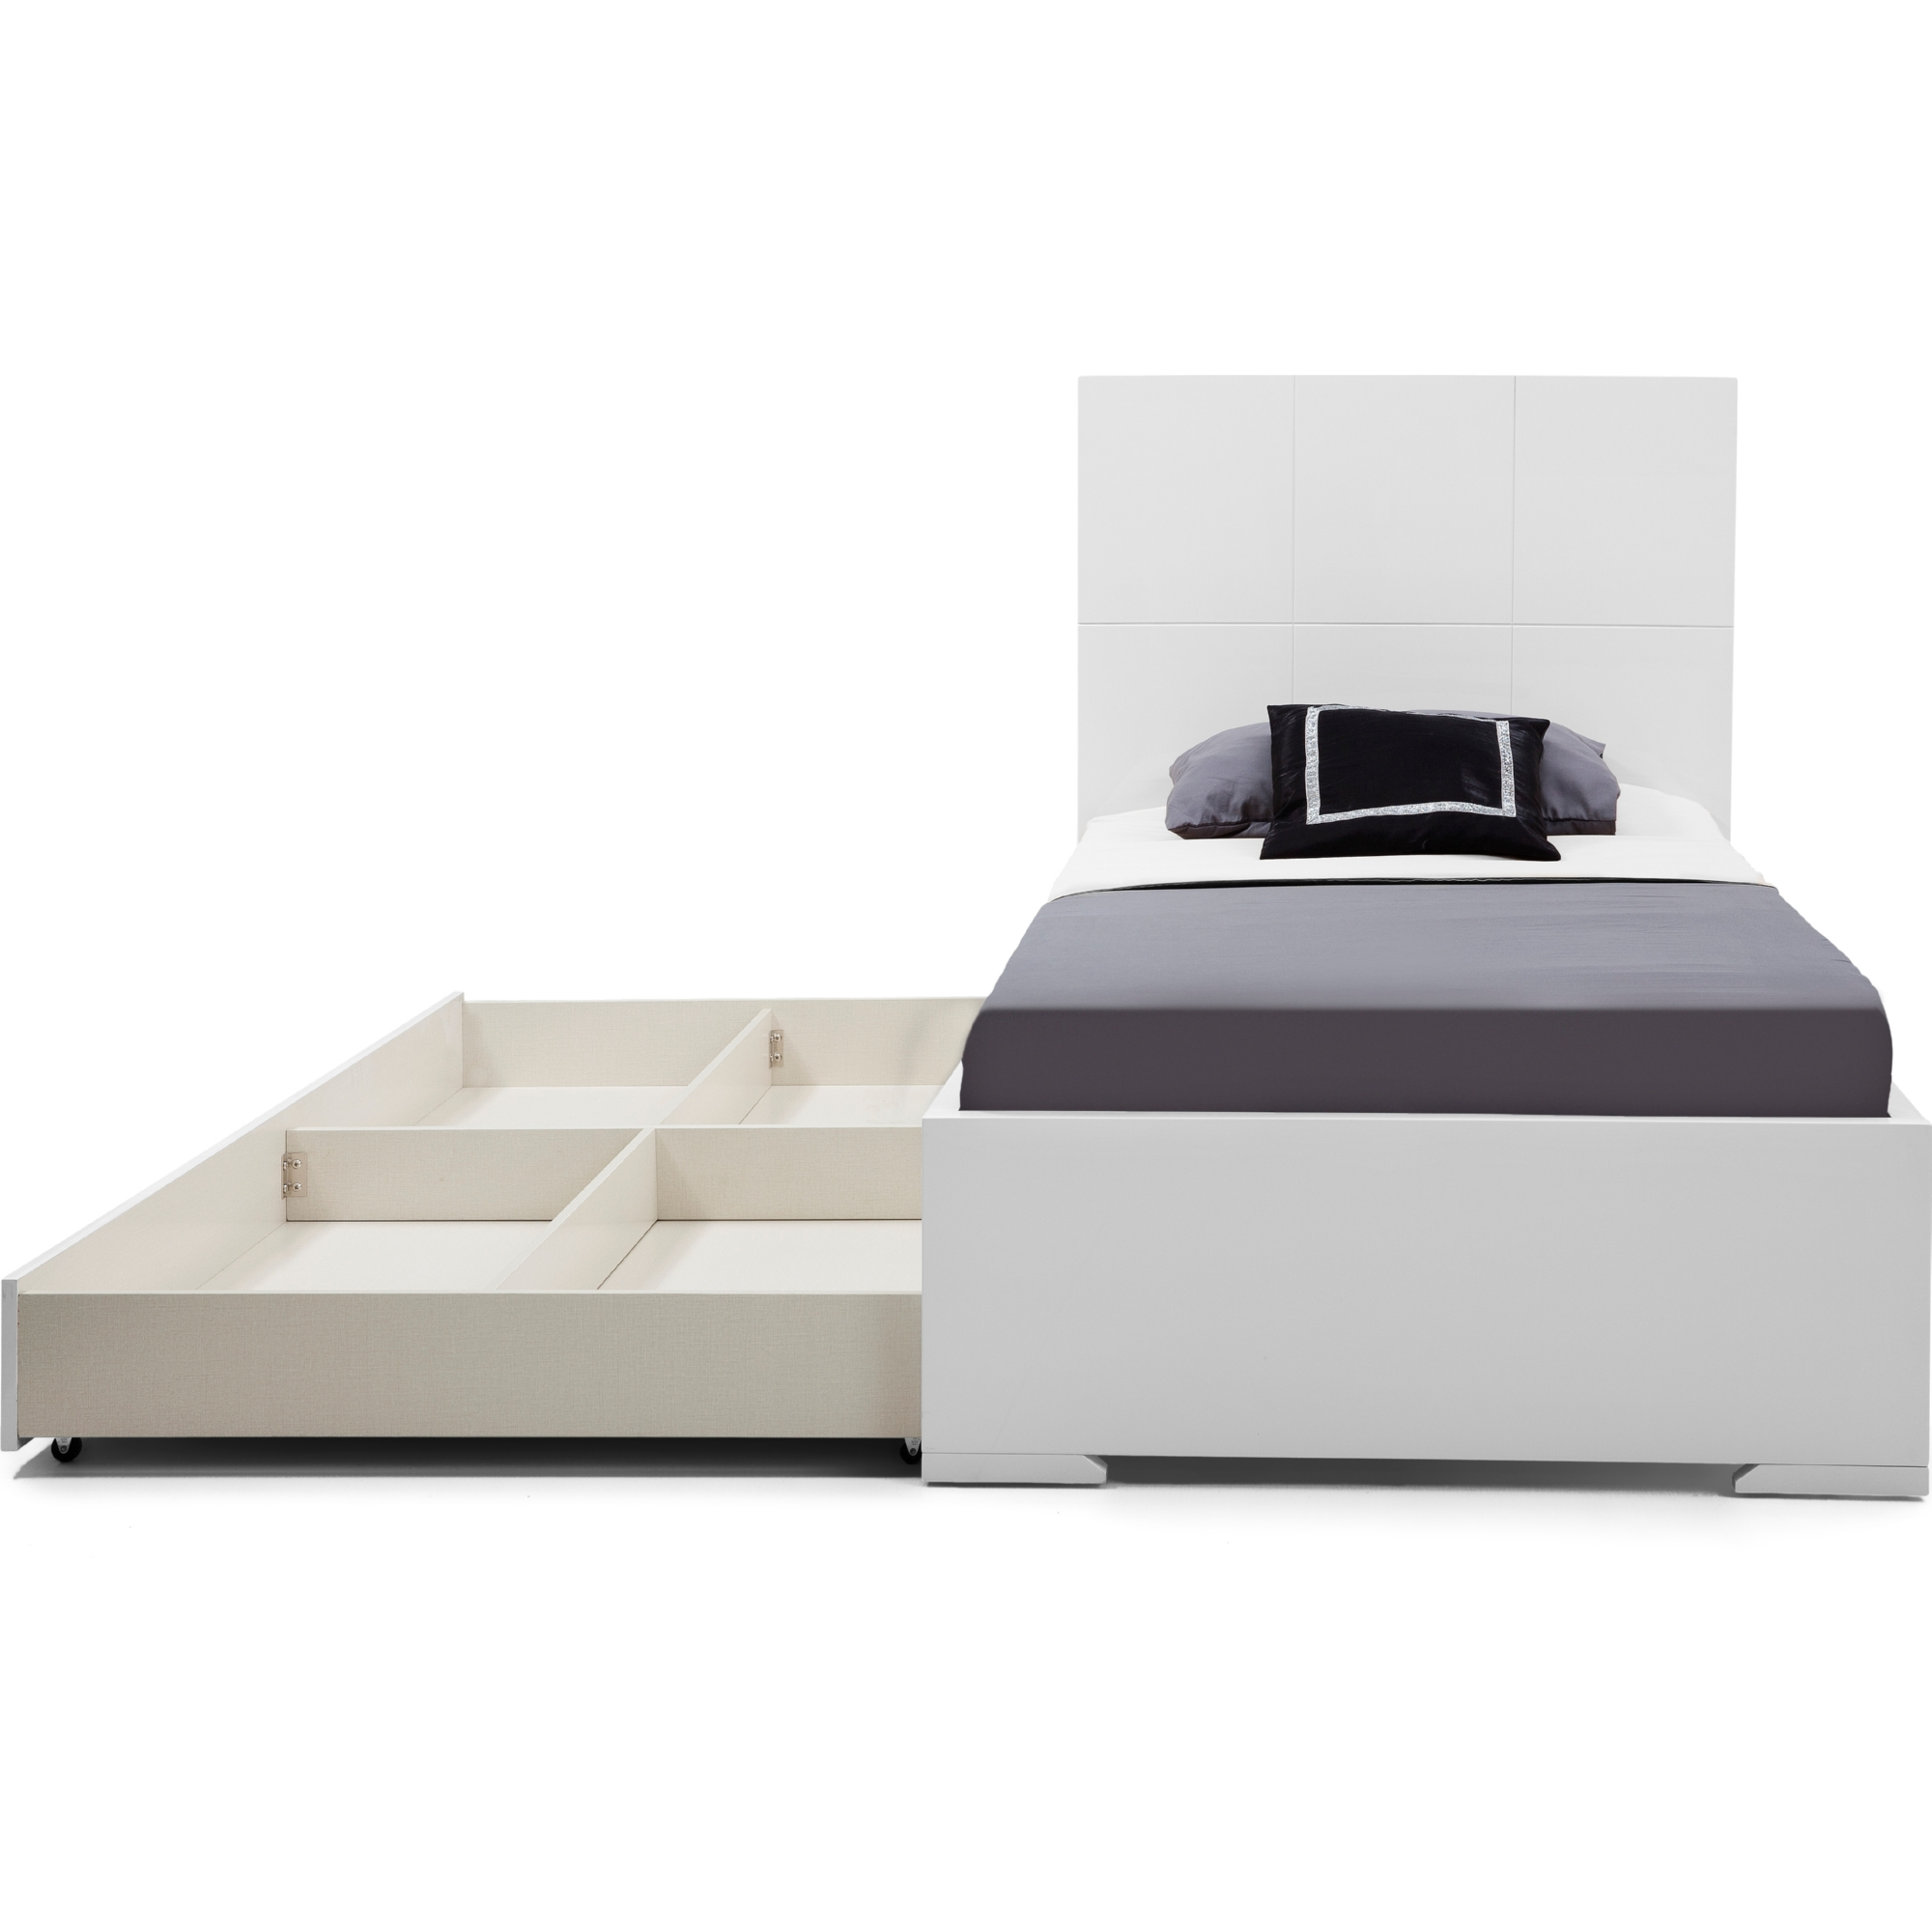 Whiteline Imports Bt1207t Wht Anna Twin Bed W Trundle In High Gloss